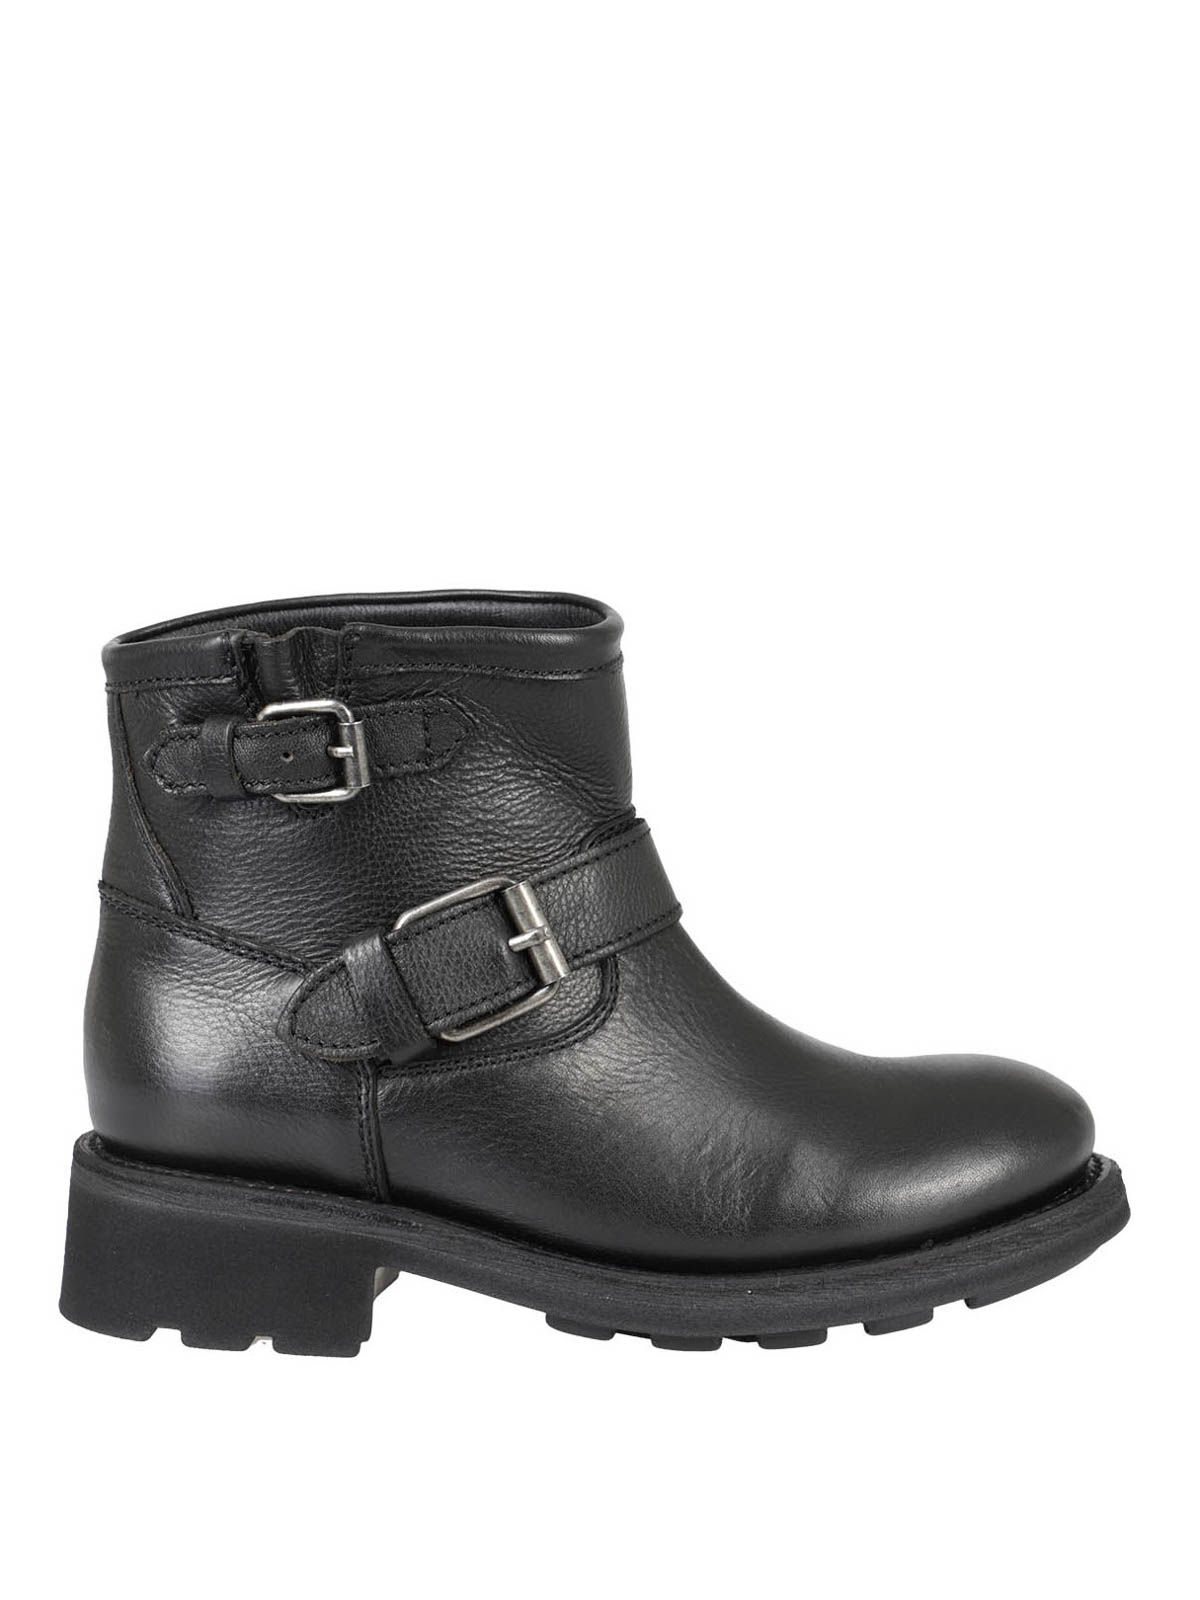 Ash GRAINY LEATHER ANKLE BOOTS